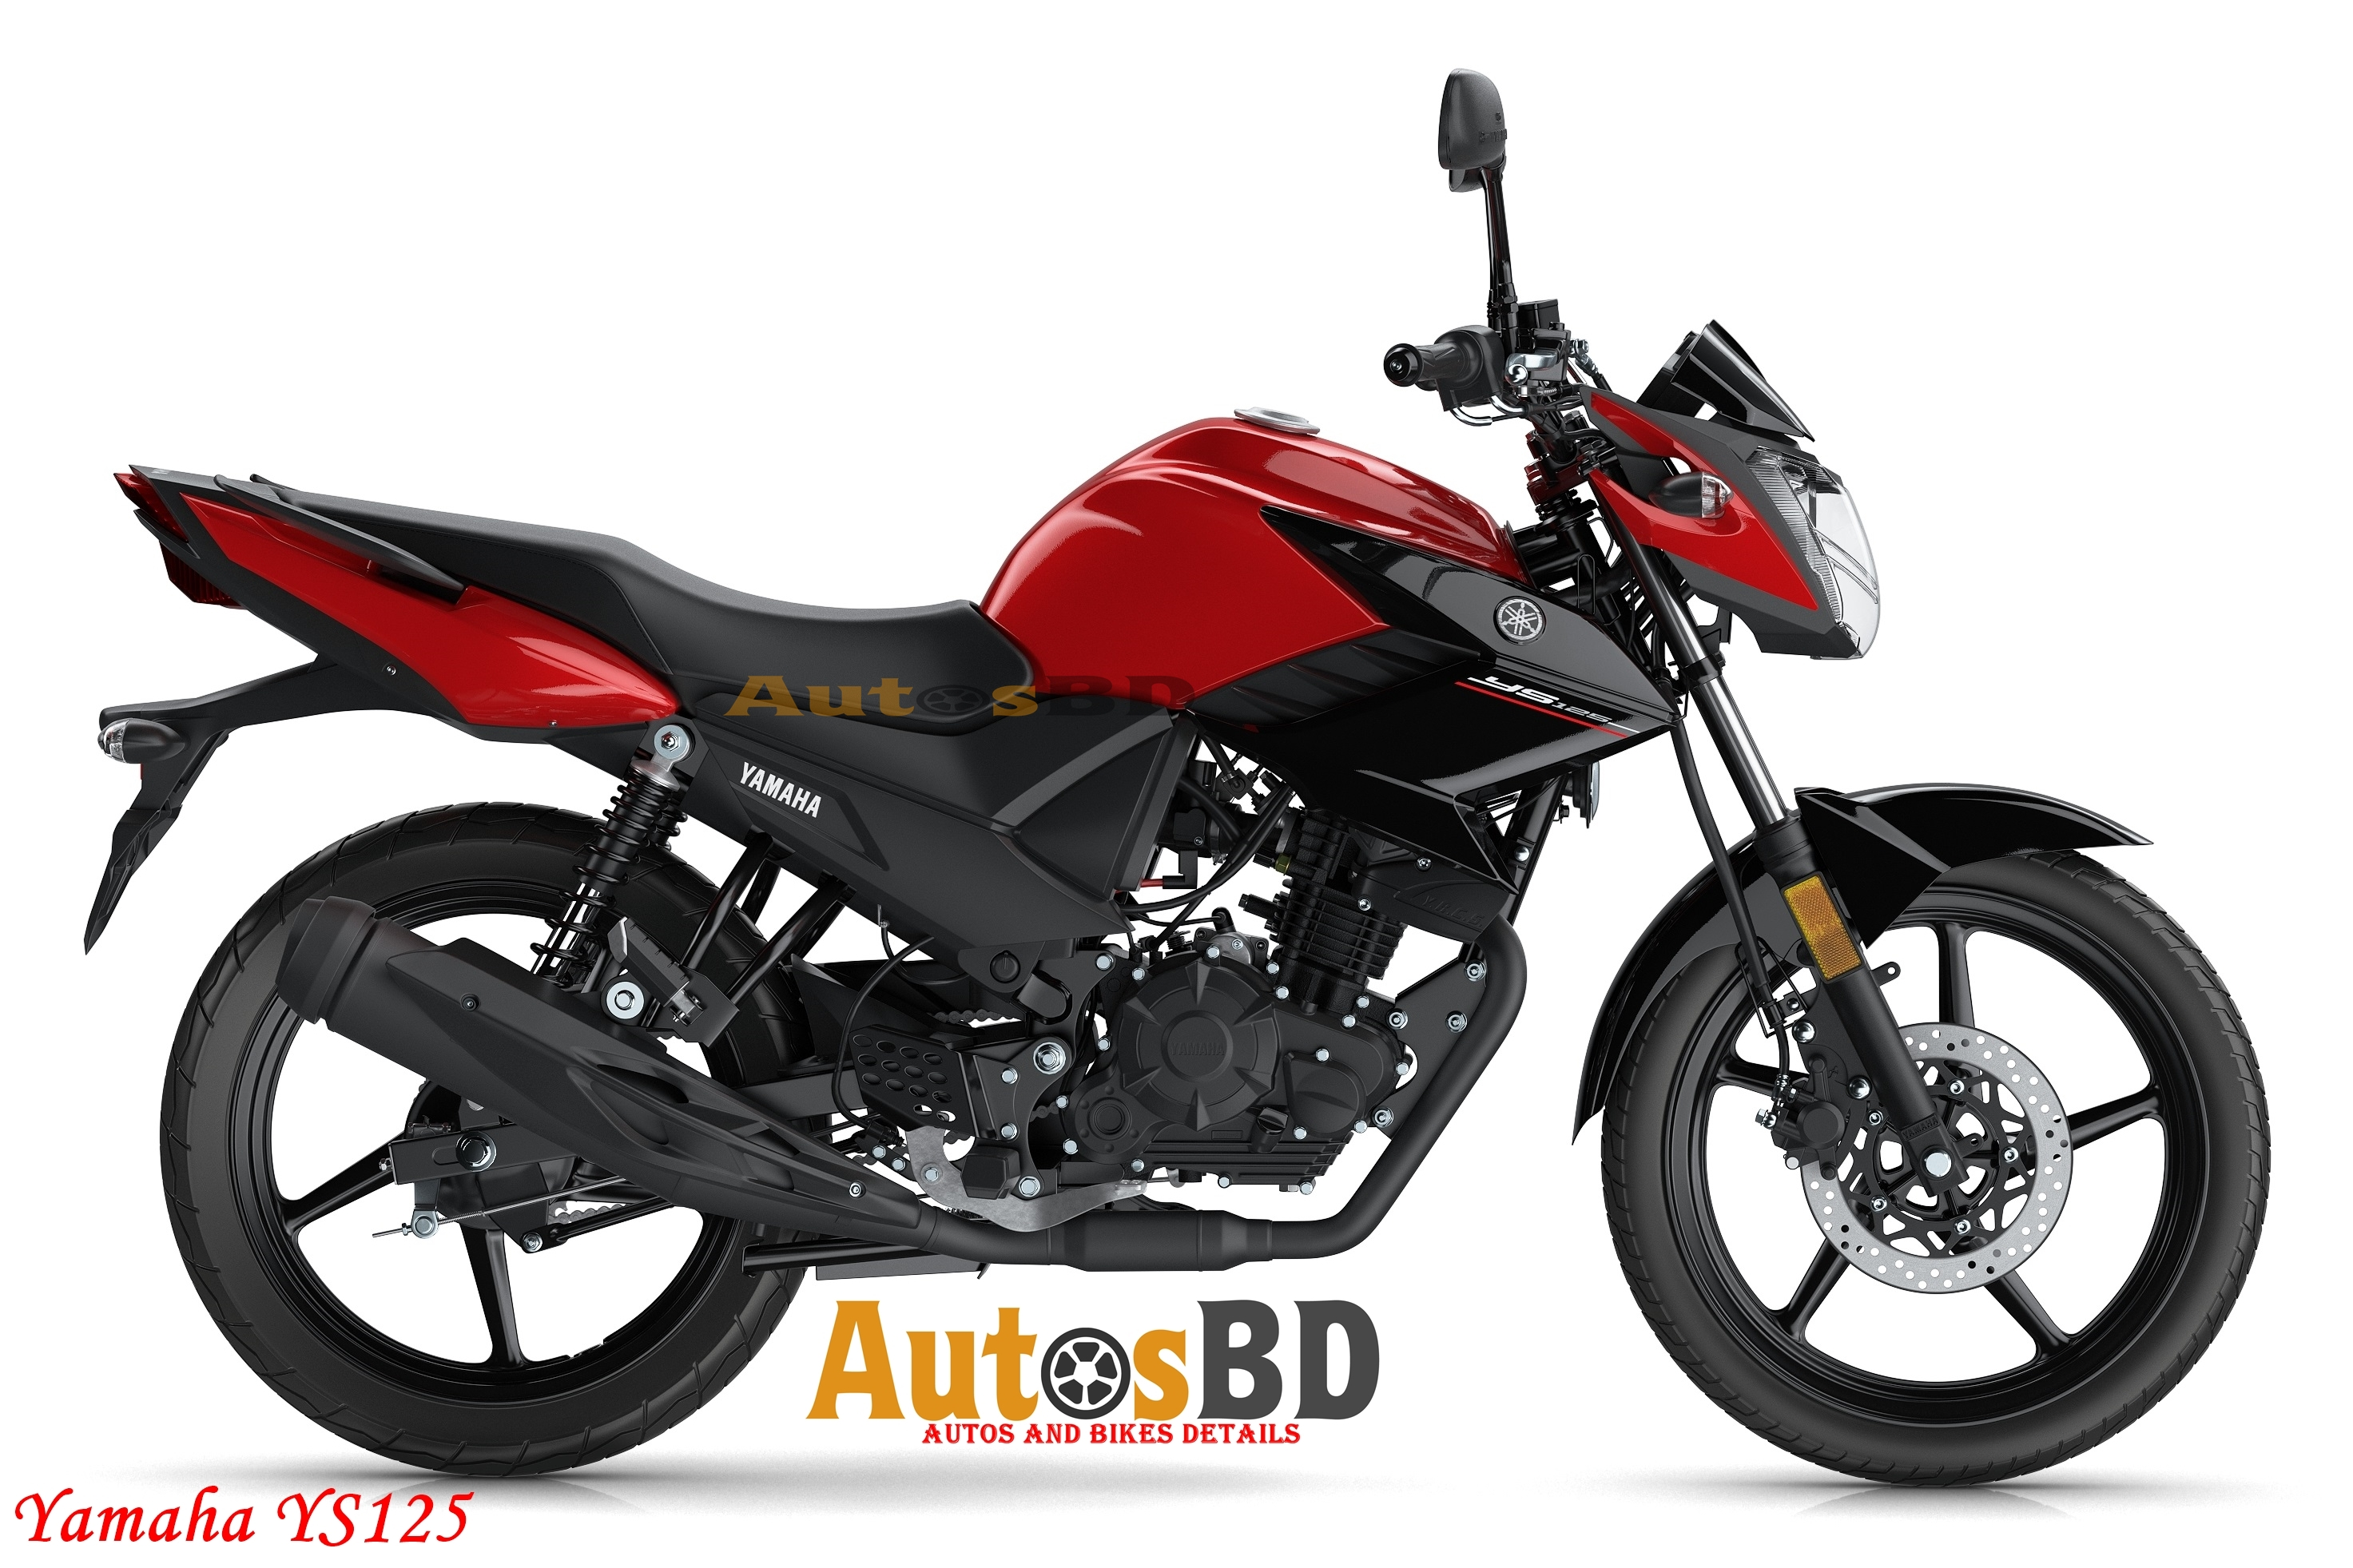 Yamaha YS125 Motorcycle Specification